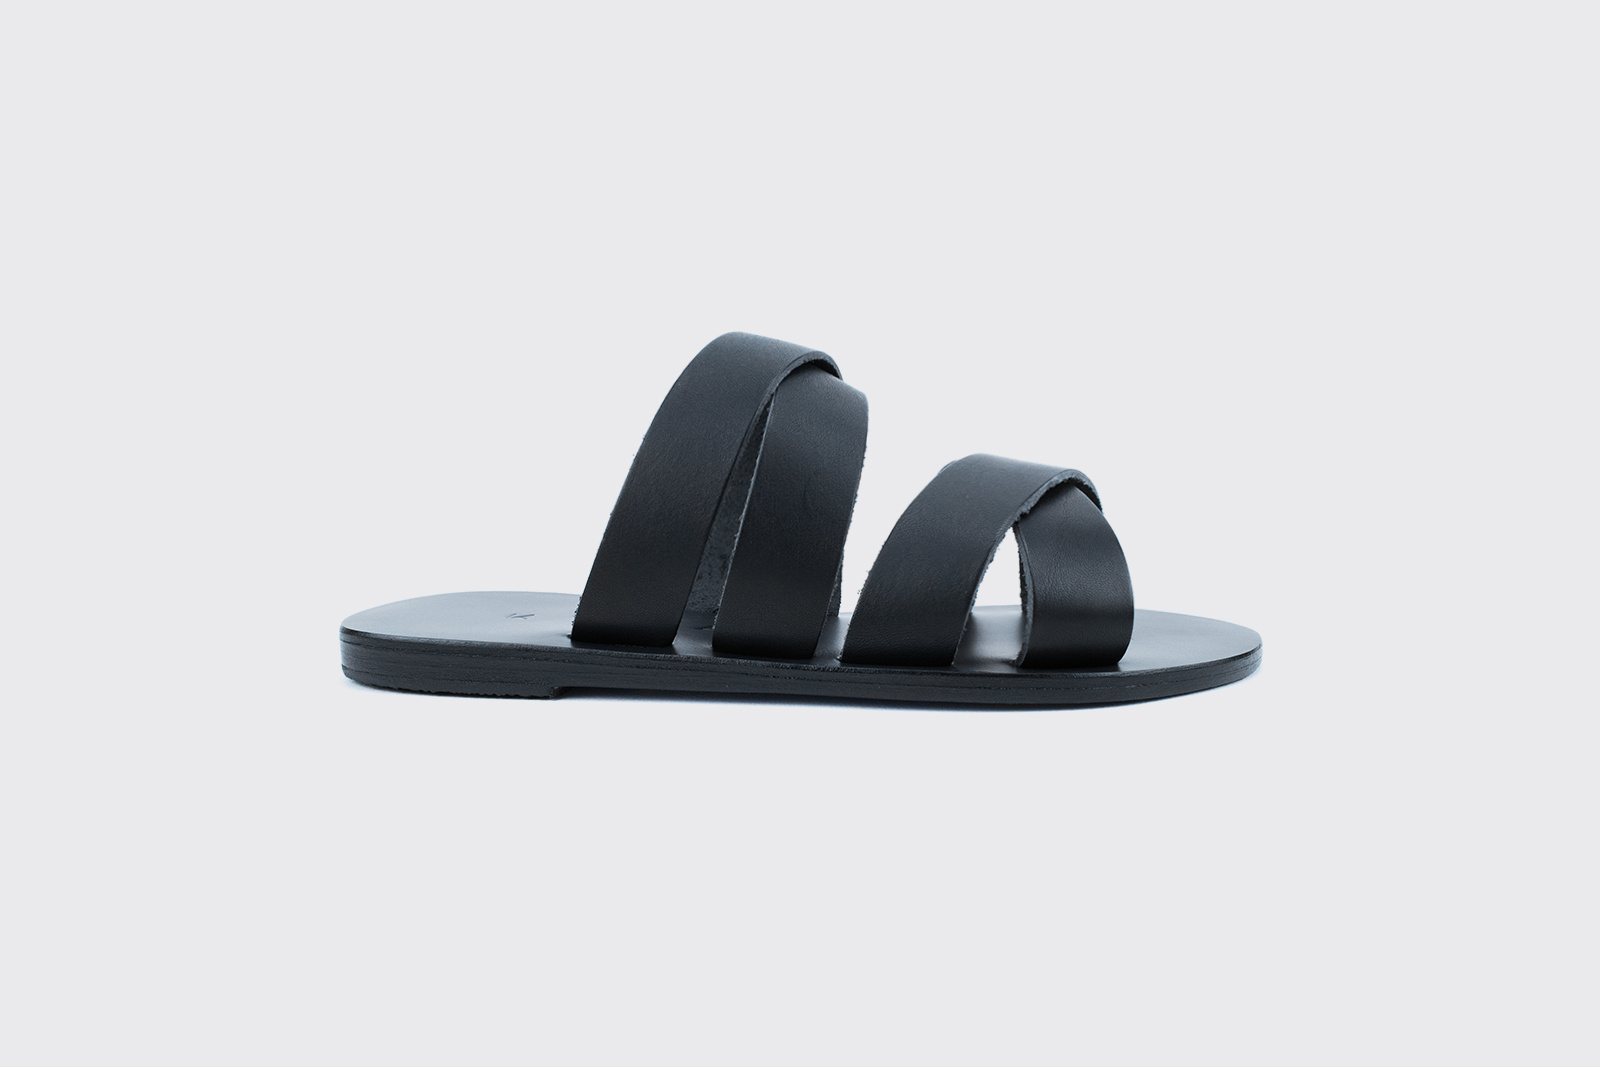 Kyma Kalamos Handmade Greek Sandals in Black